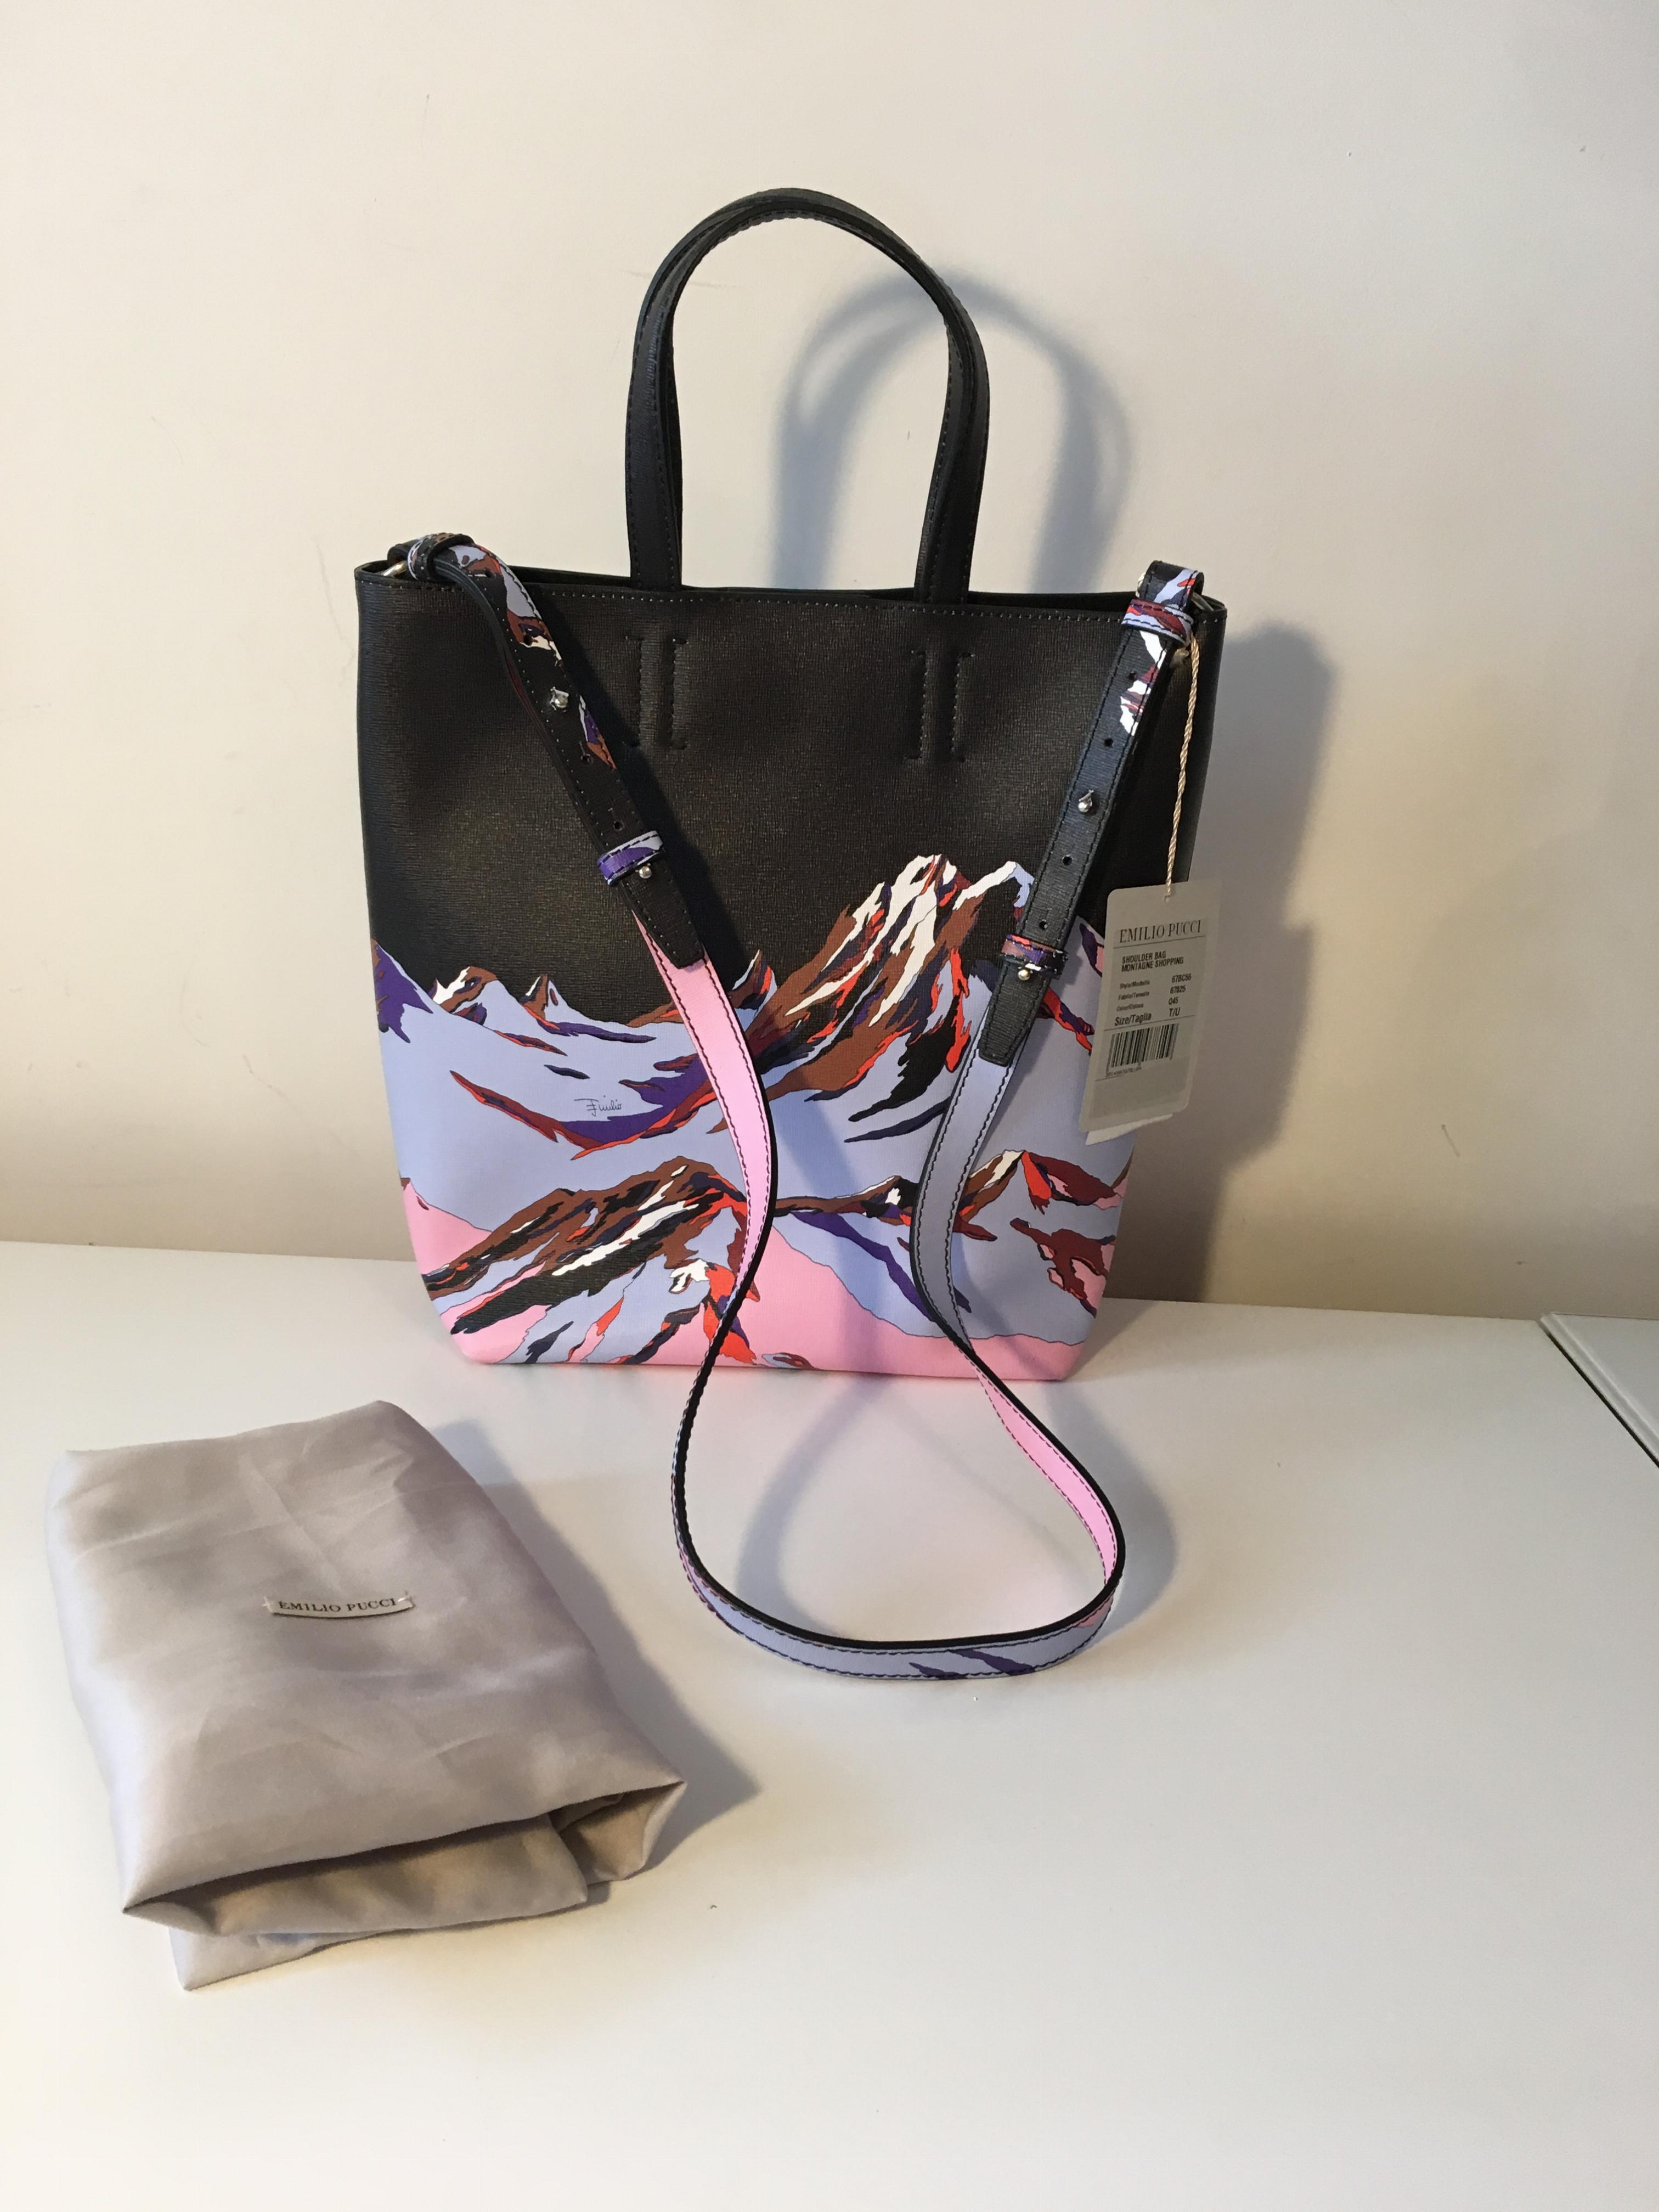 54ab8b909645 Emilio Pucci Montagne Shoulder Bag. 27. 12345678910